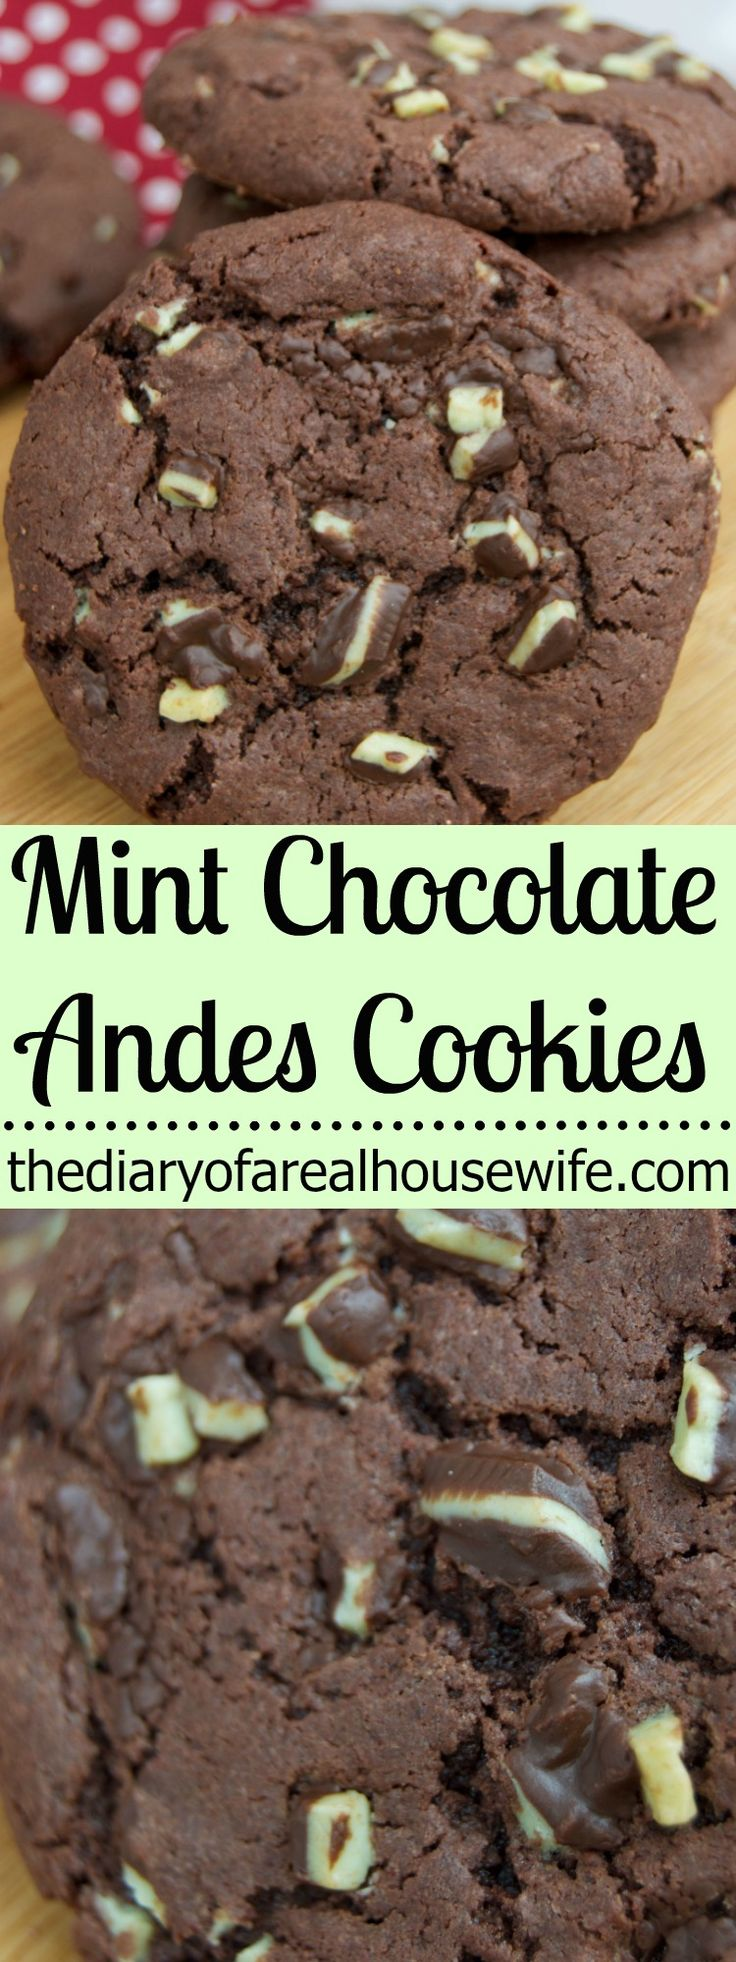 Mint Chocolate Andes Cookies. My FAVORITE holiday cookie. This is a must try this year.